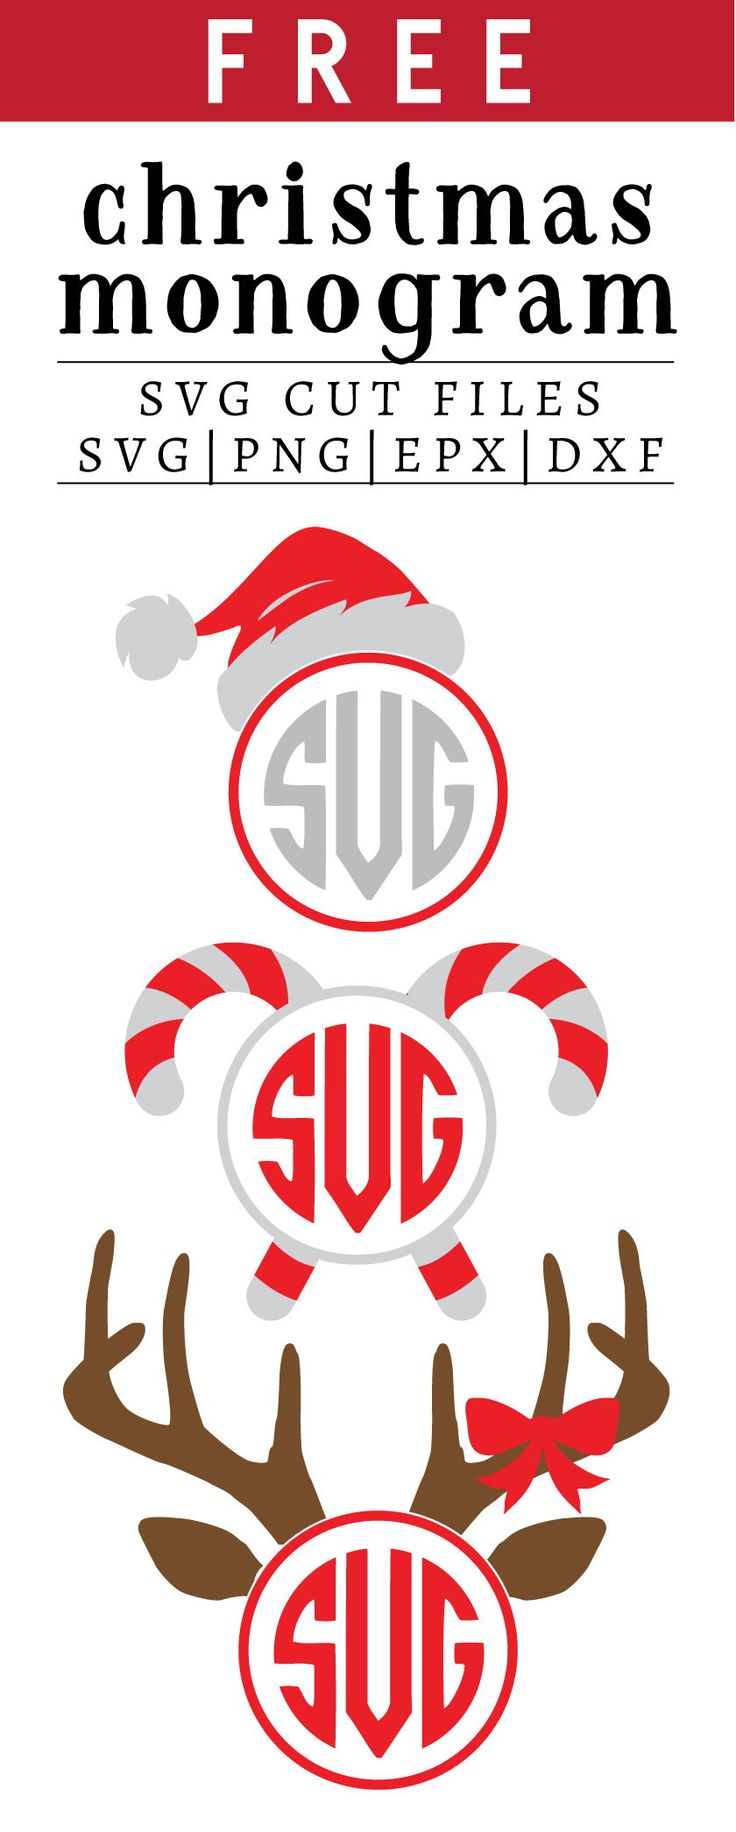 Free Christmas Monogram SVG, PNG, EPS & DXF by Cricut